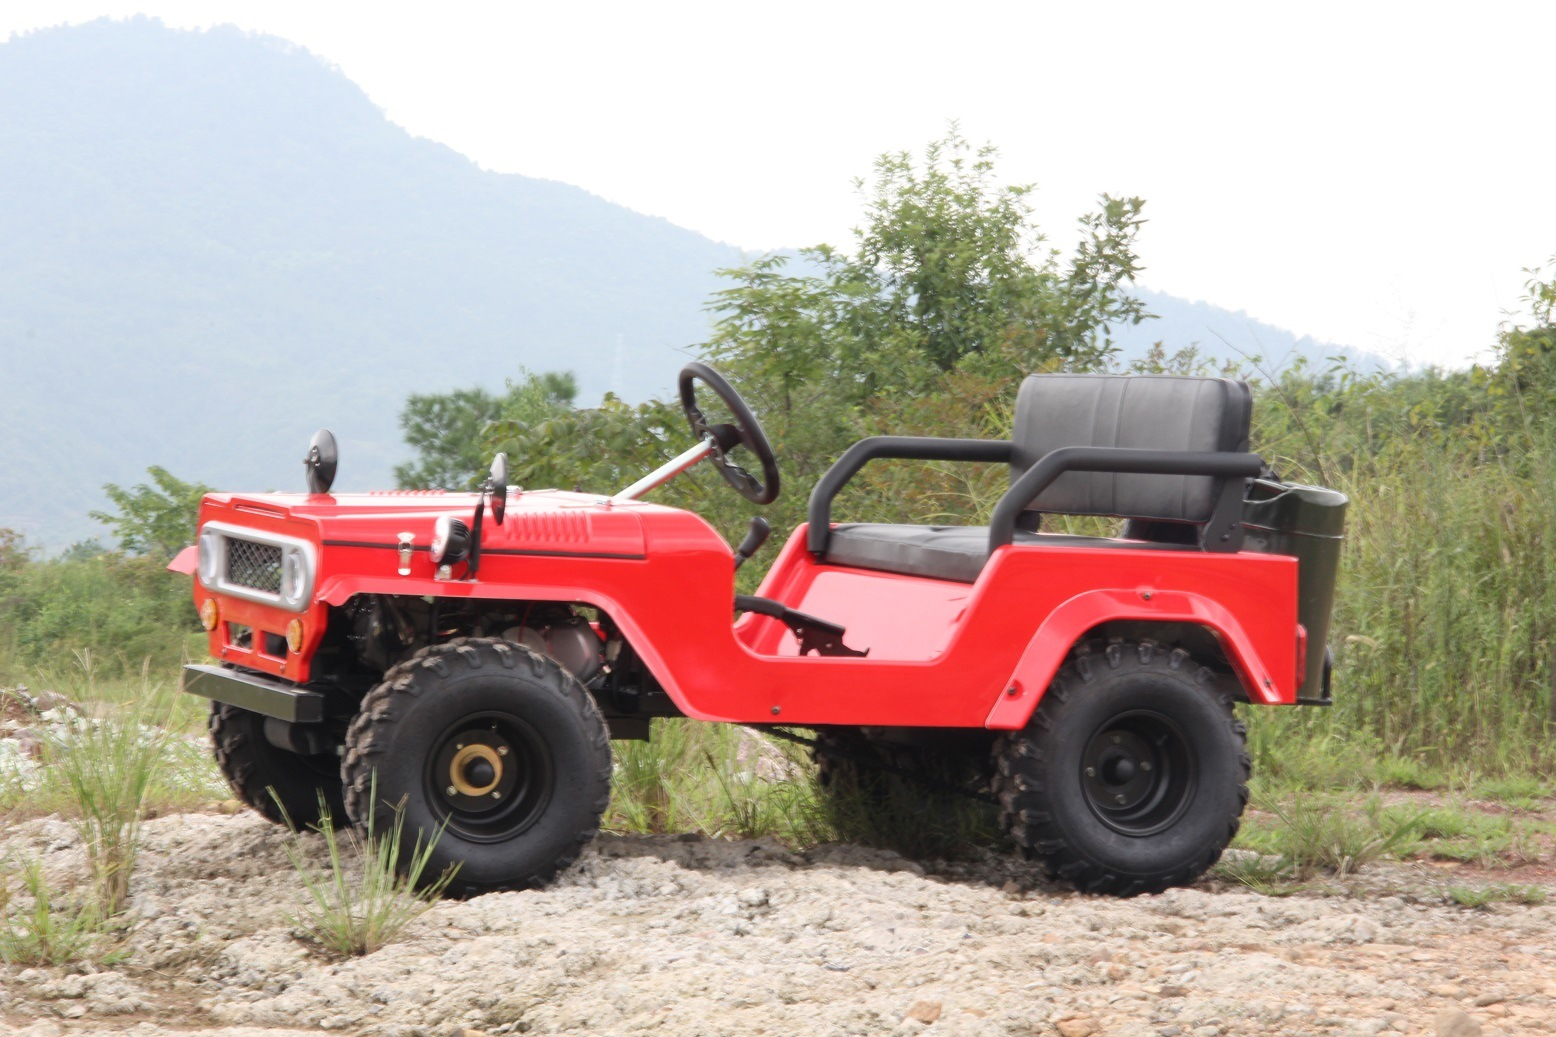 Red Color Land Cruiser 110cc 125cc 150cc 200cc ATV